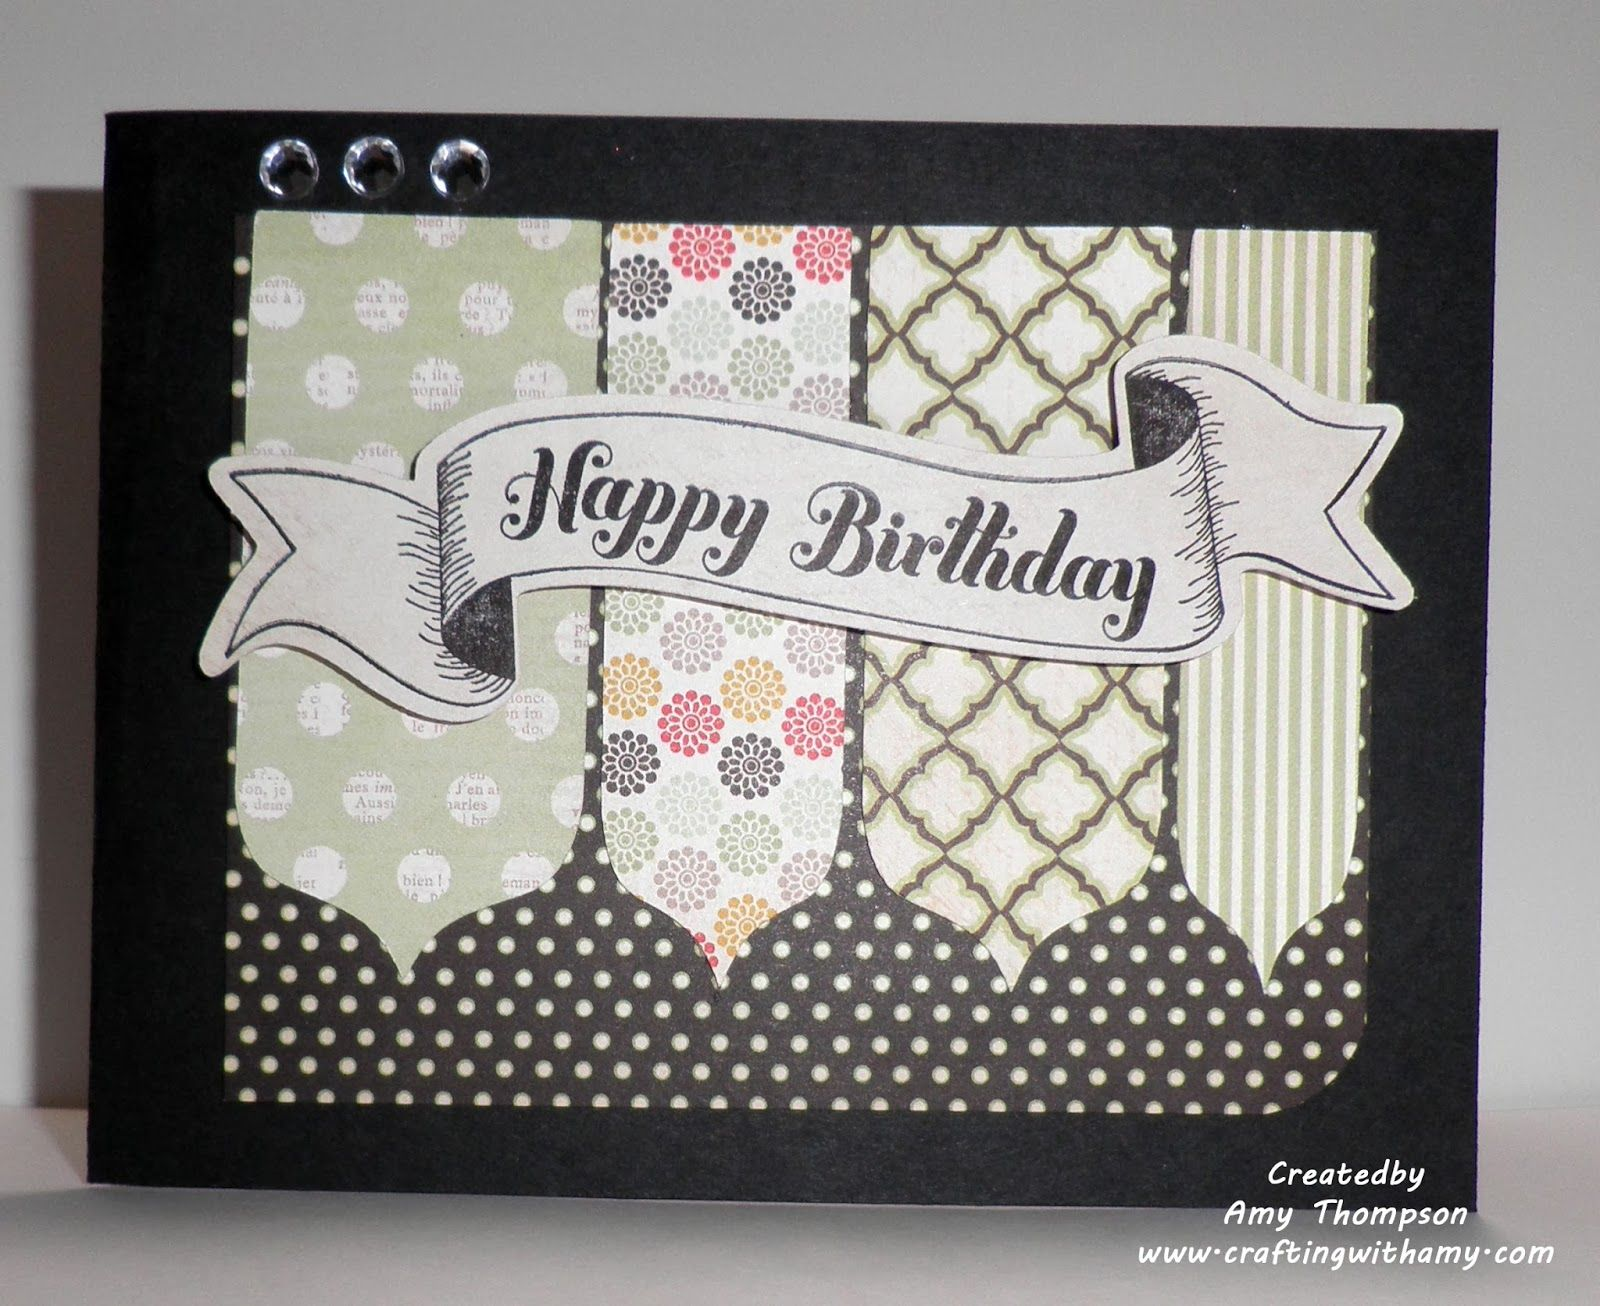 Crafting with Amy: Happy Birthday banner card